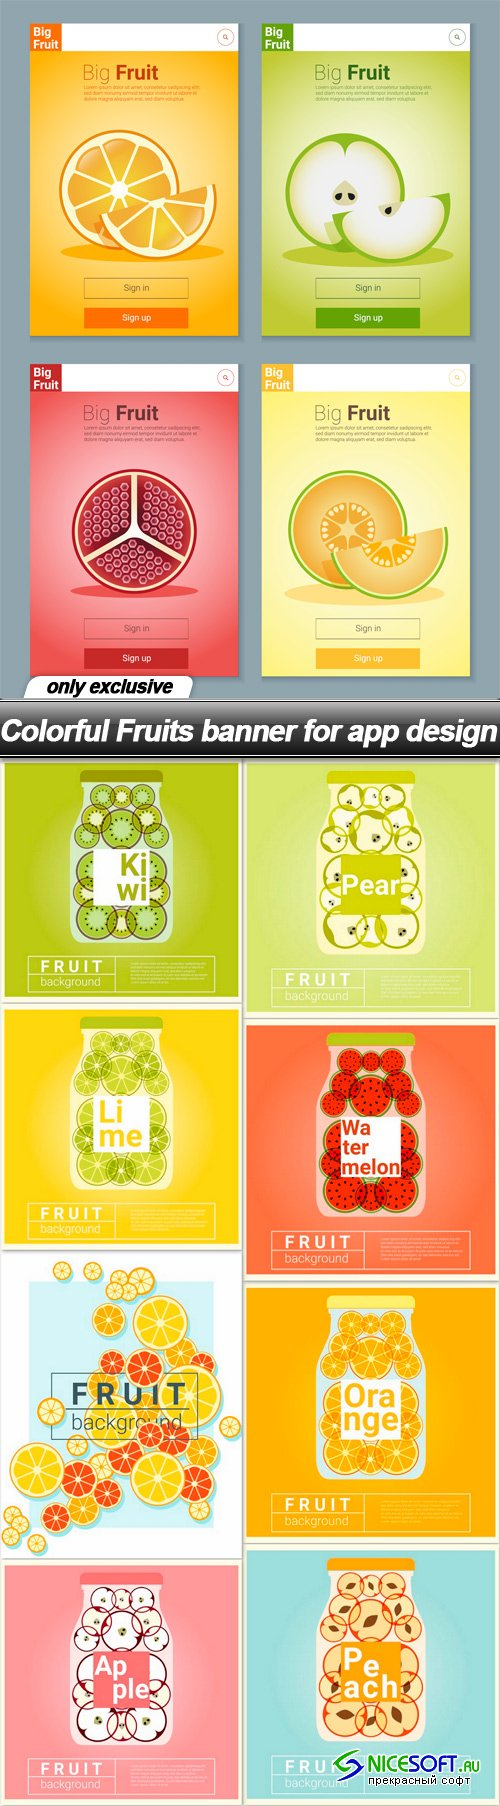 Colorful Fruits banner for app design